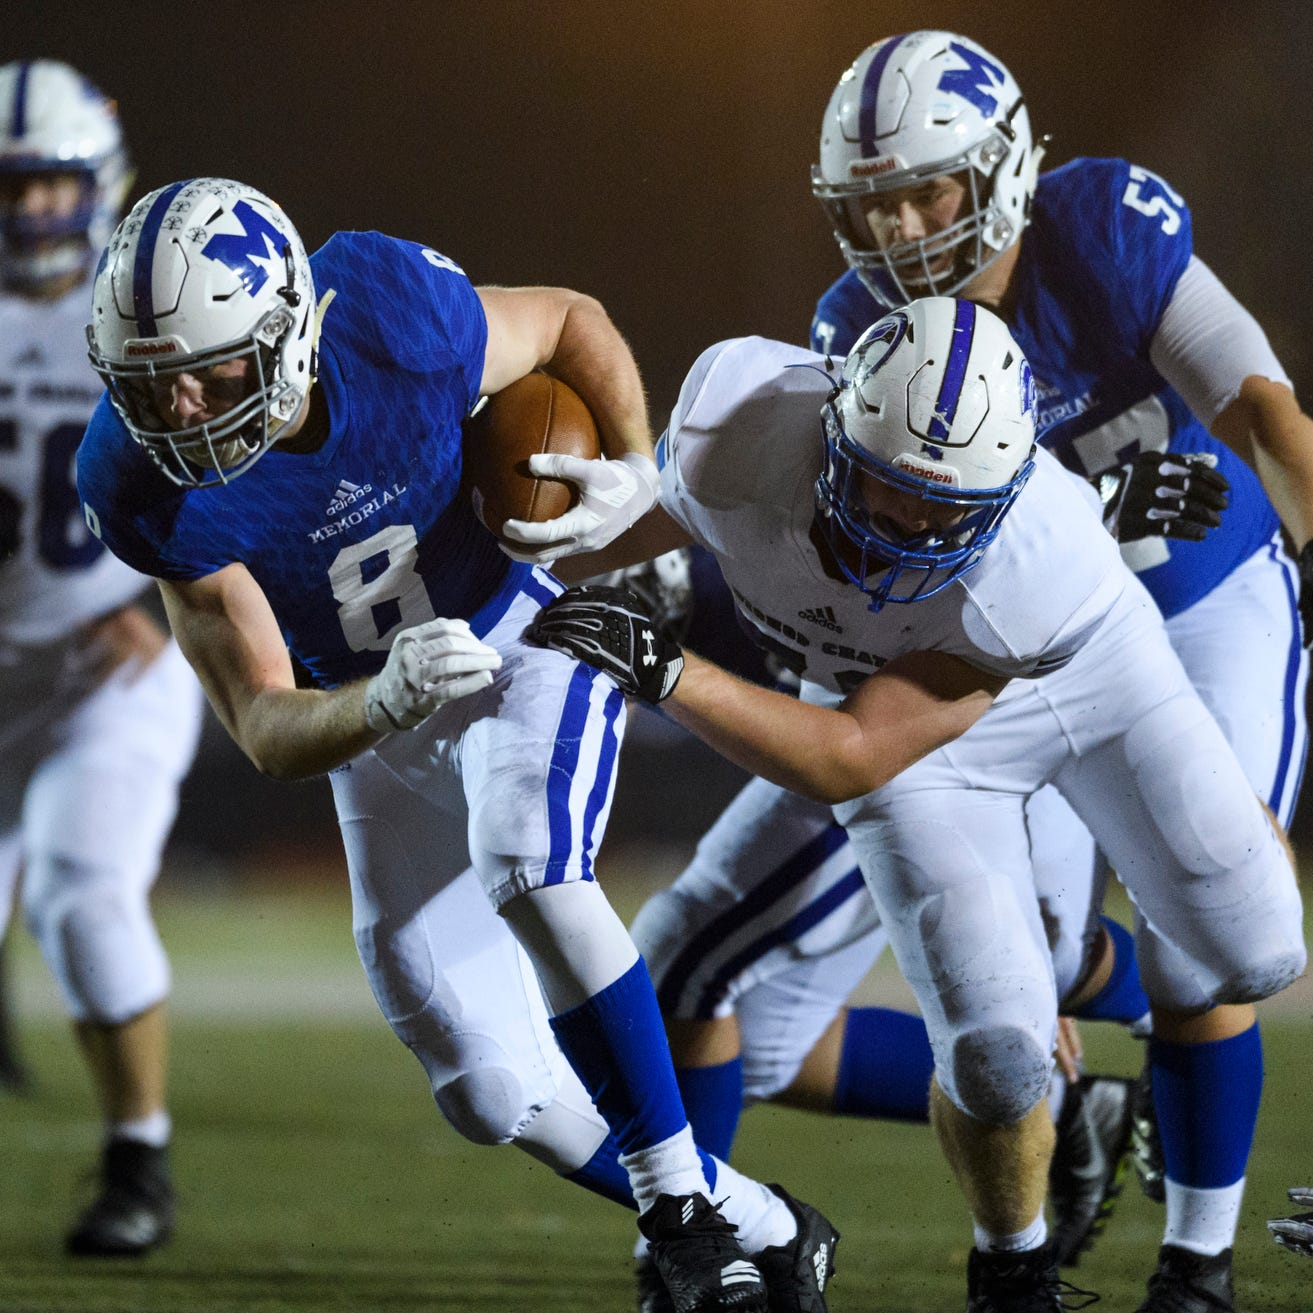 C&P staff predictions for IHSAA state football title games for Evansville-area teams